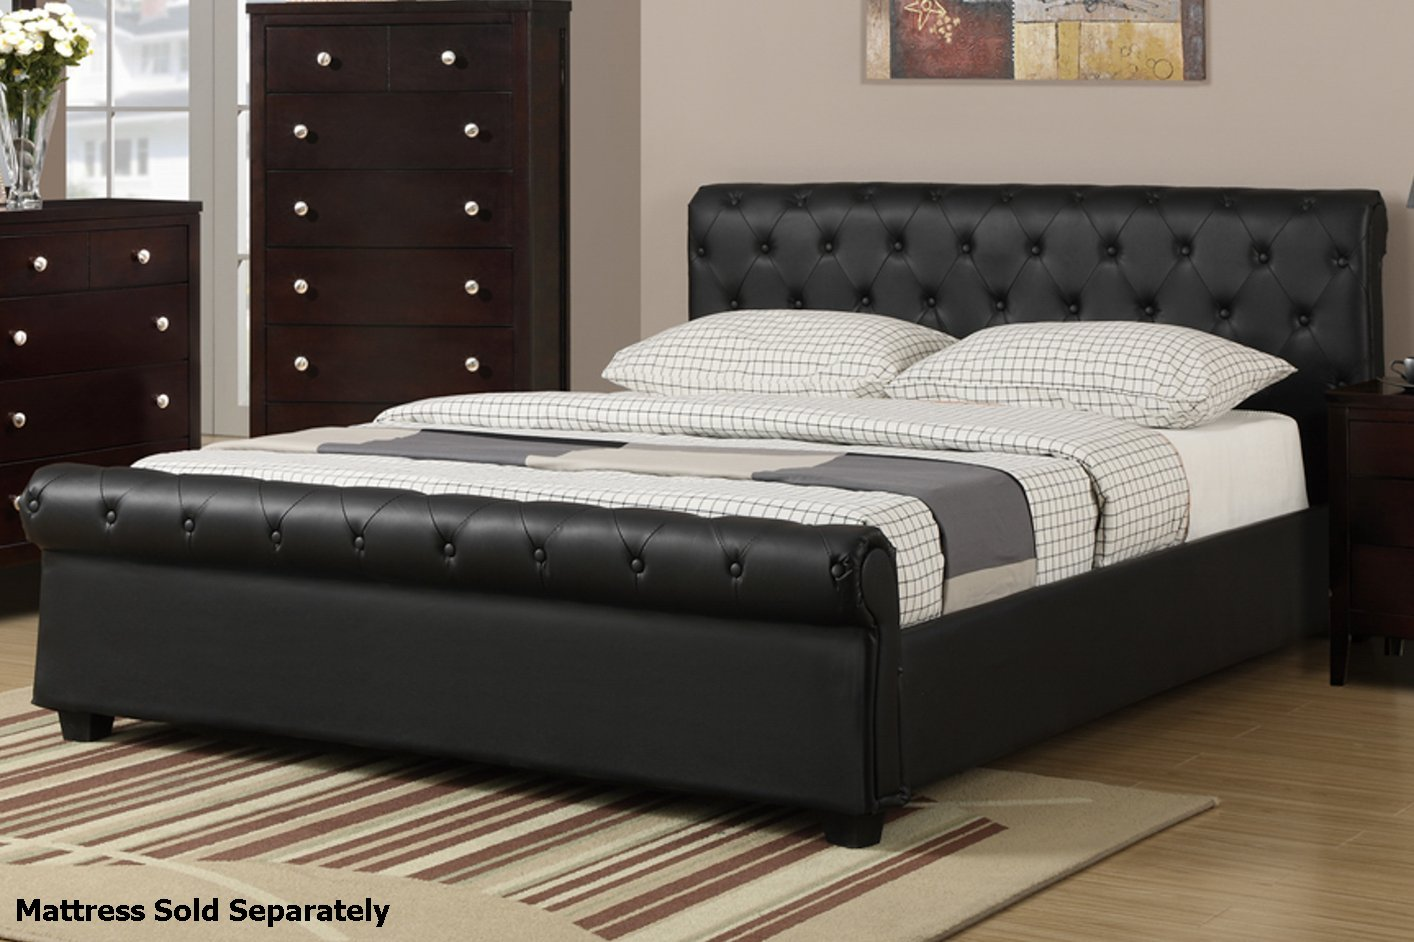 Poundex f9246q black queen size leather bed steal a sofa furniture outlet los angeles ca Size of a queen size mattress